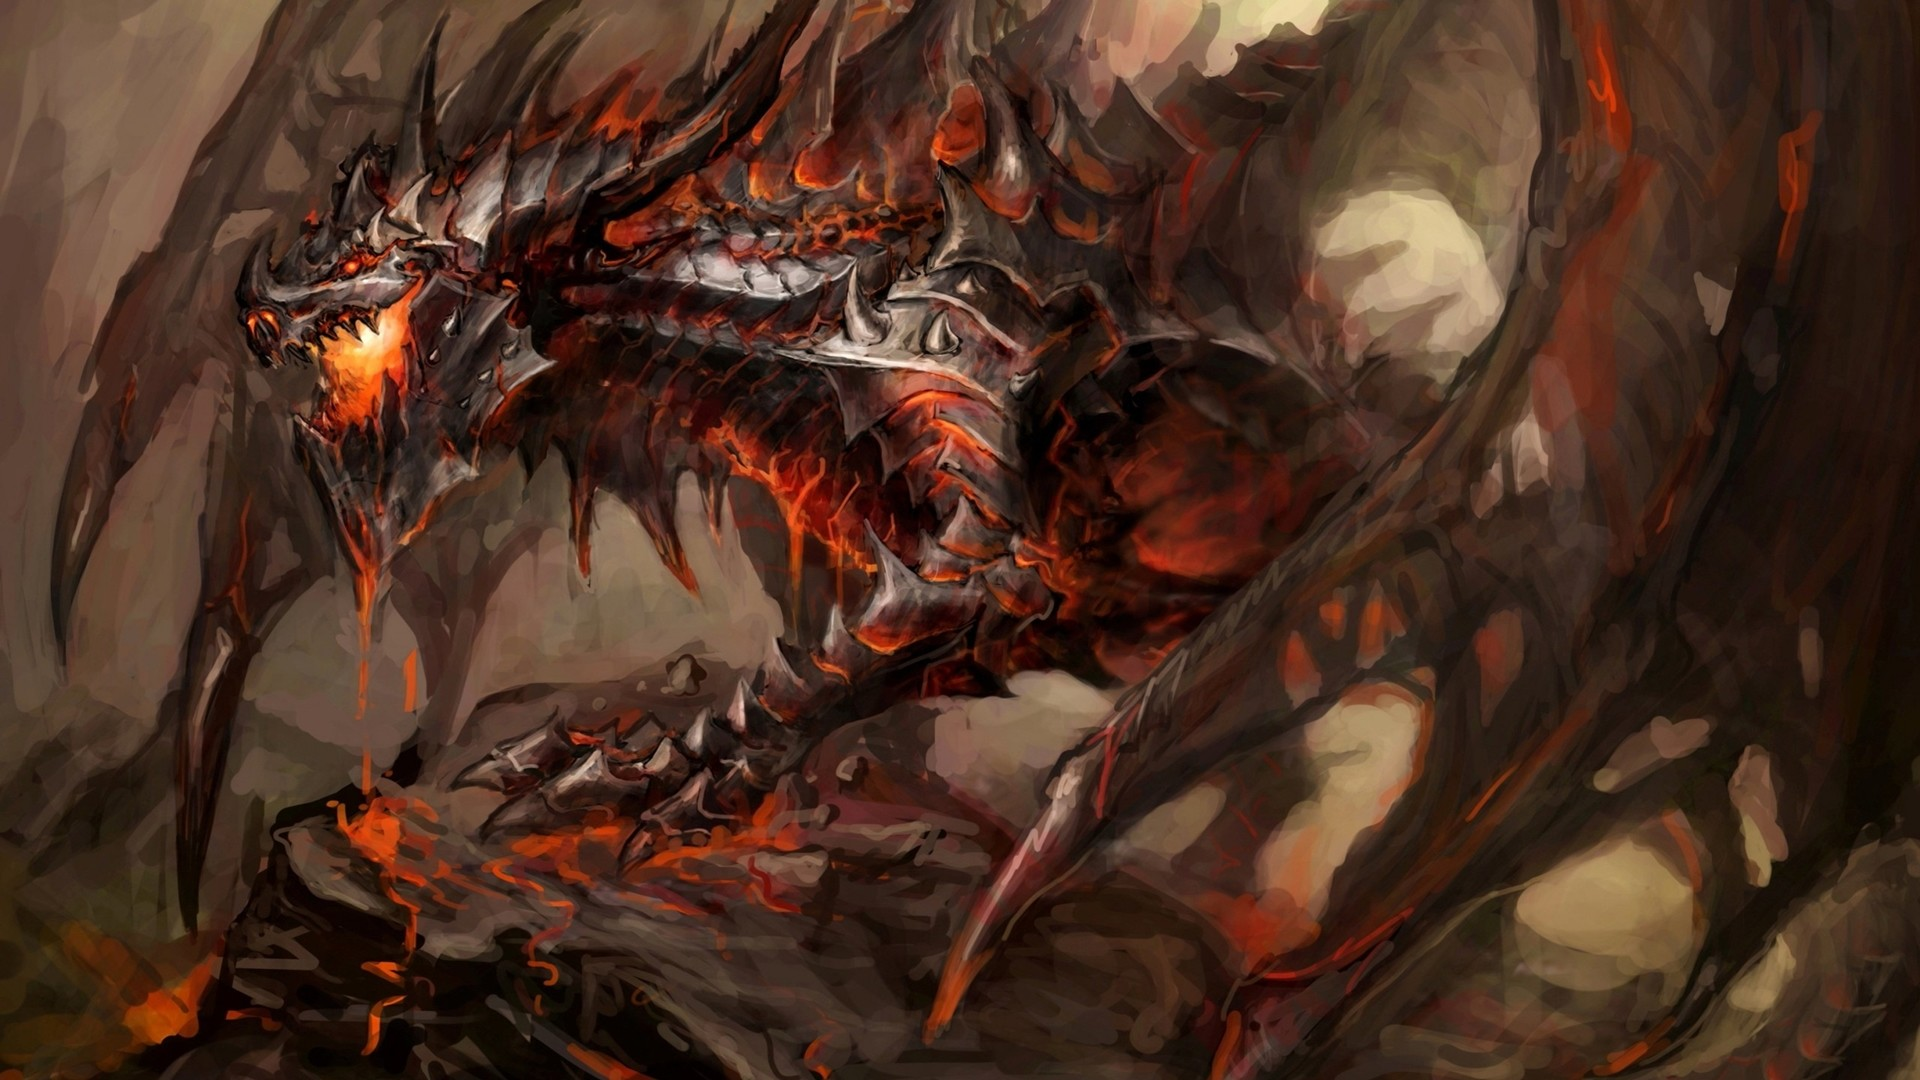 Fire Dragon Wallpaper Background with High Resolution Wallpaper  px 1.10 MB